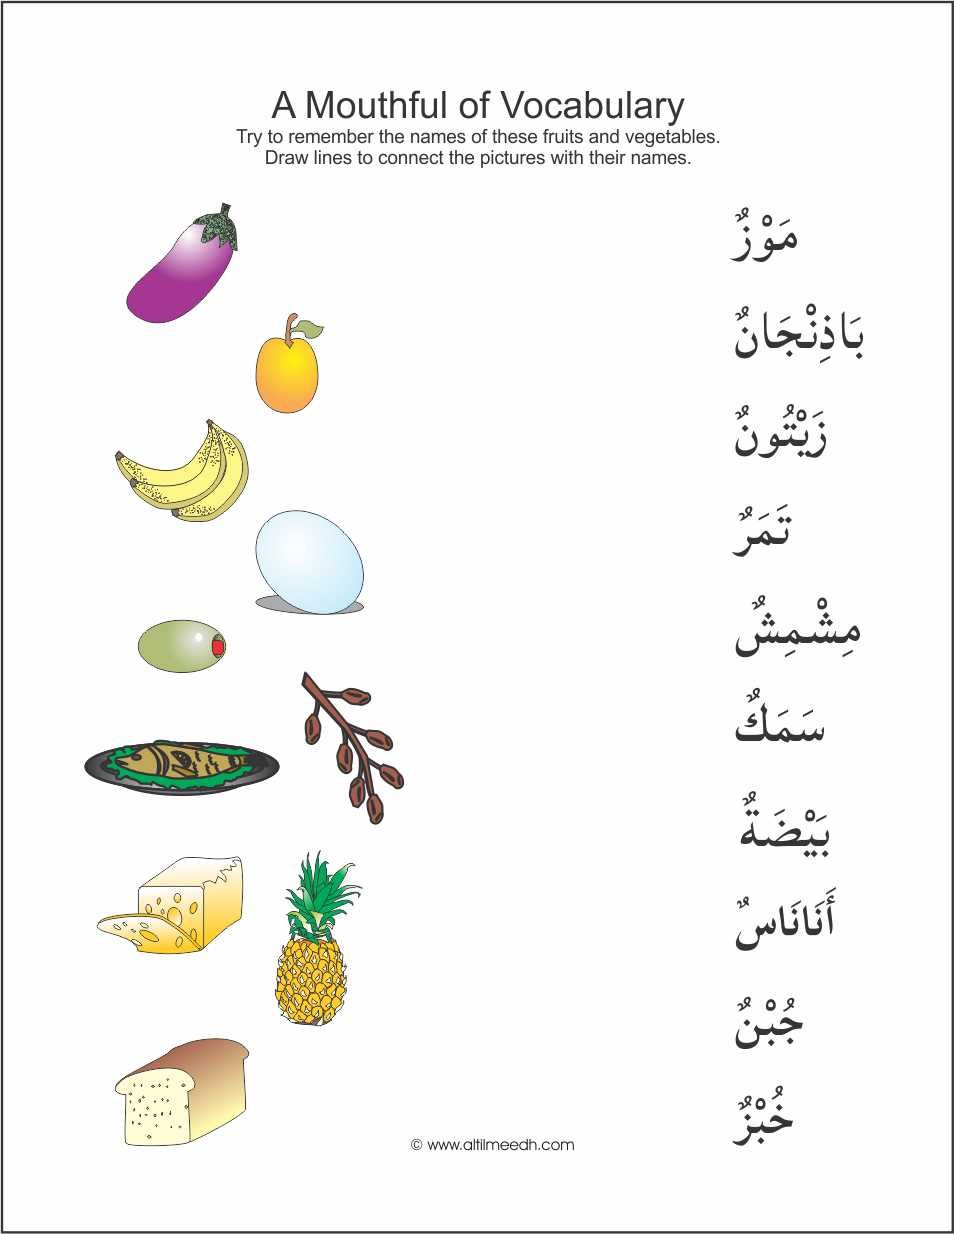 Mouthful of vocabulary image 3 arabic language pinterest recalling the vocabulary that has to do with food items students will enjoy matching the full color artwork to the names of the food items forumfinder Choice Image